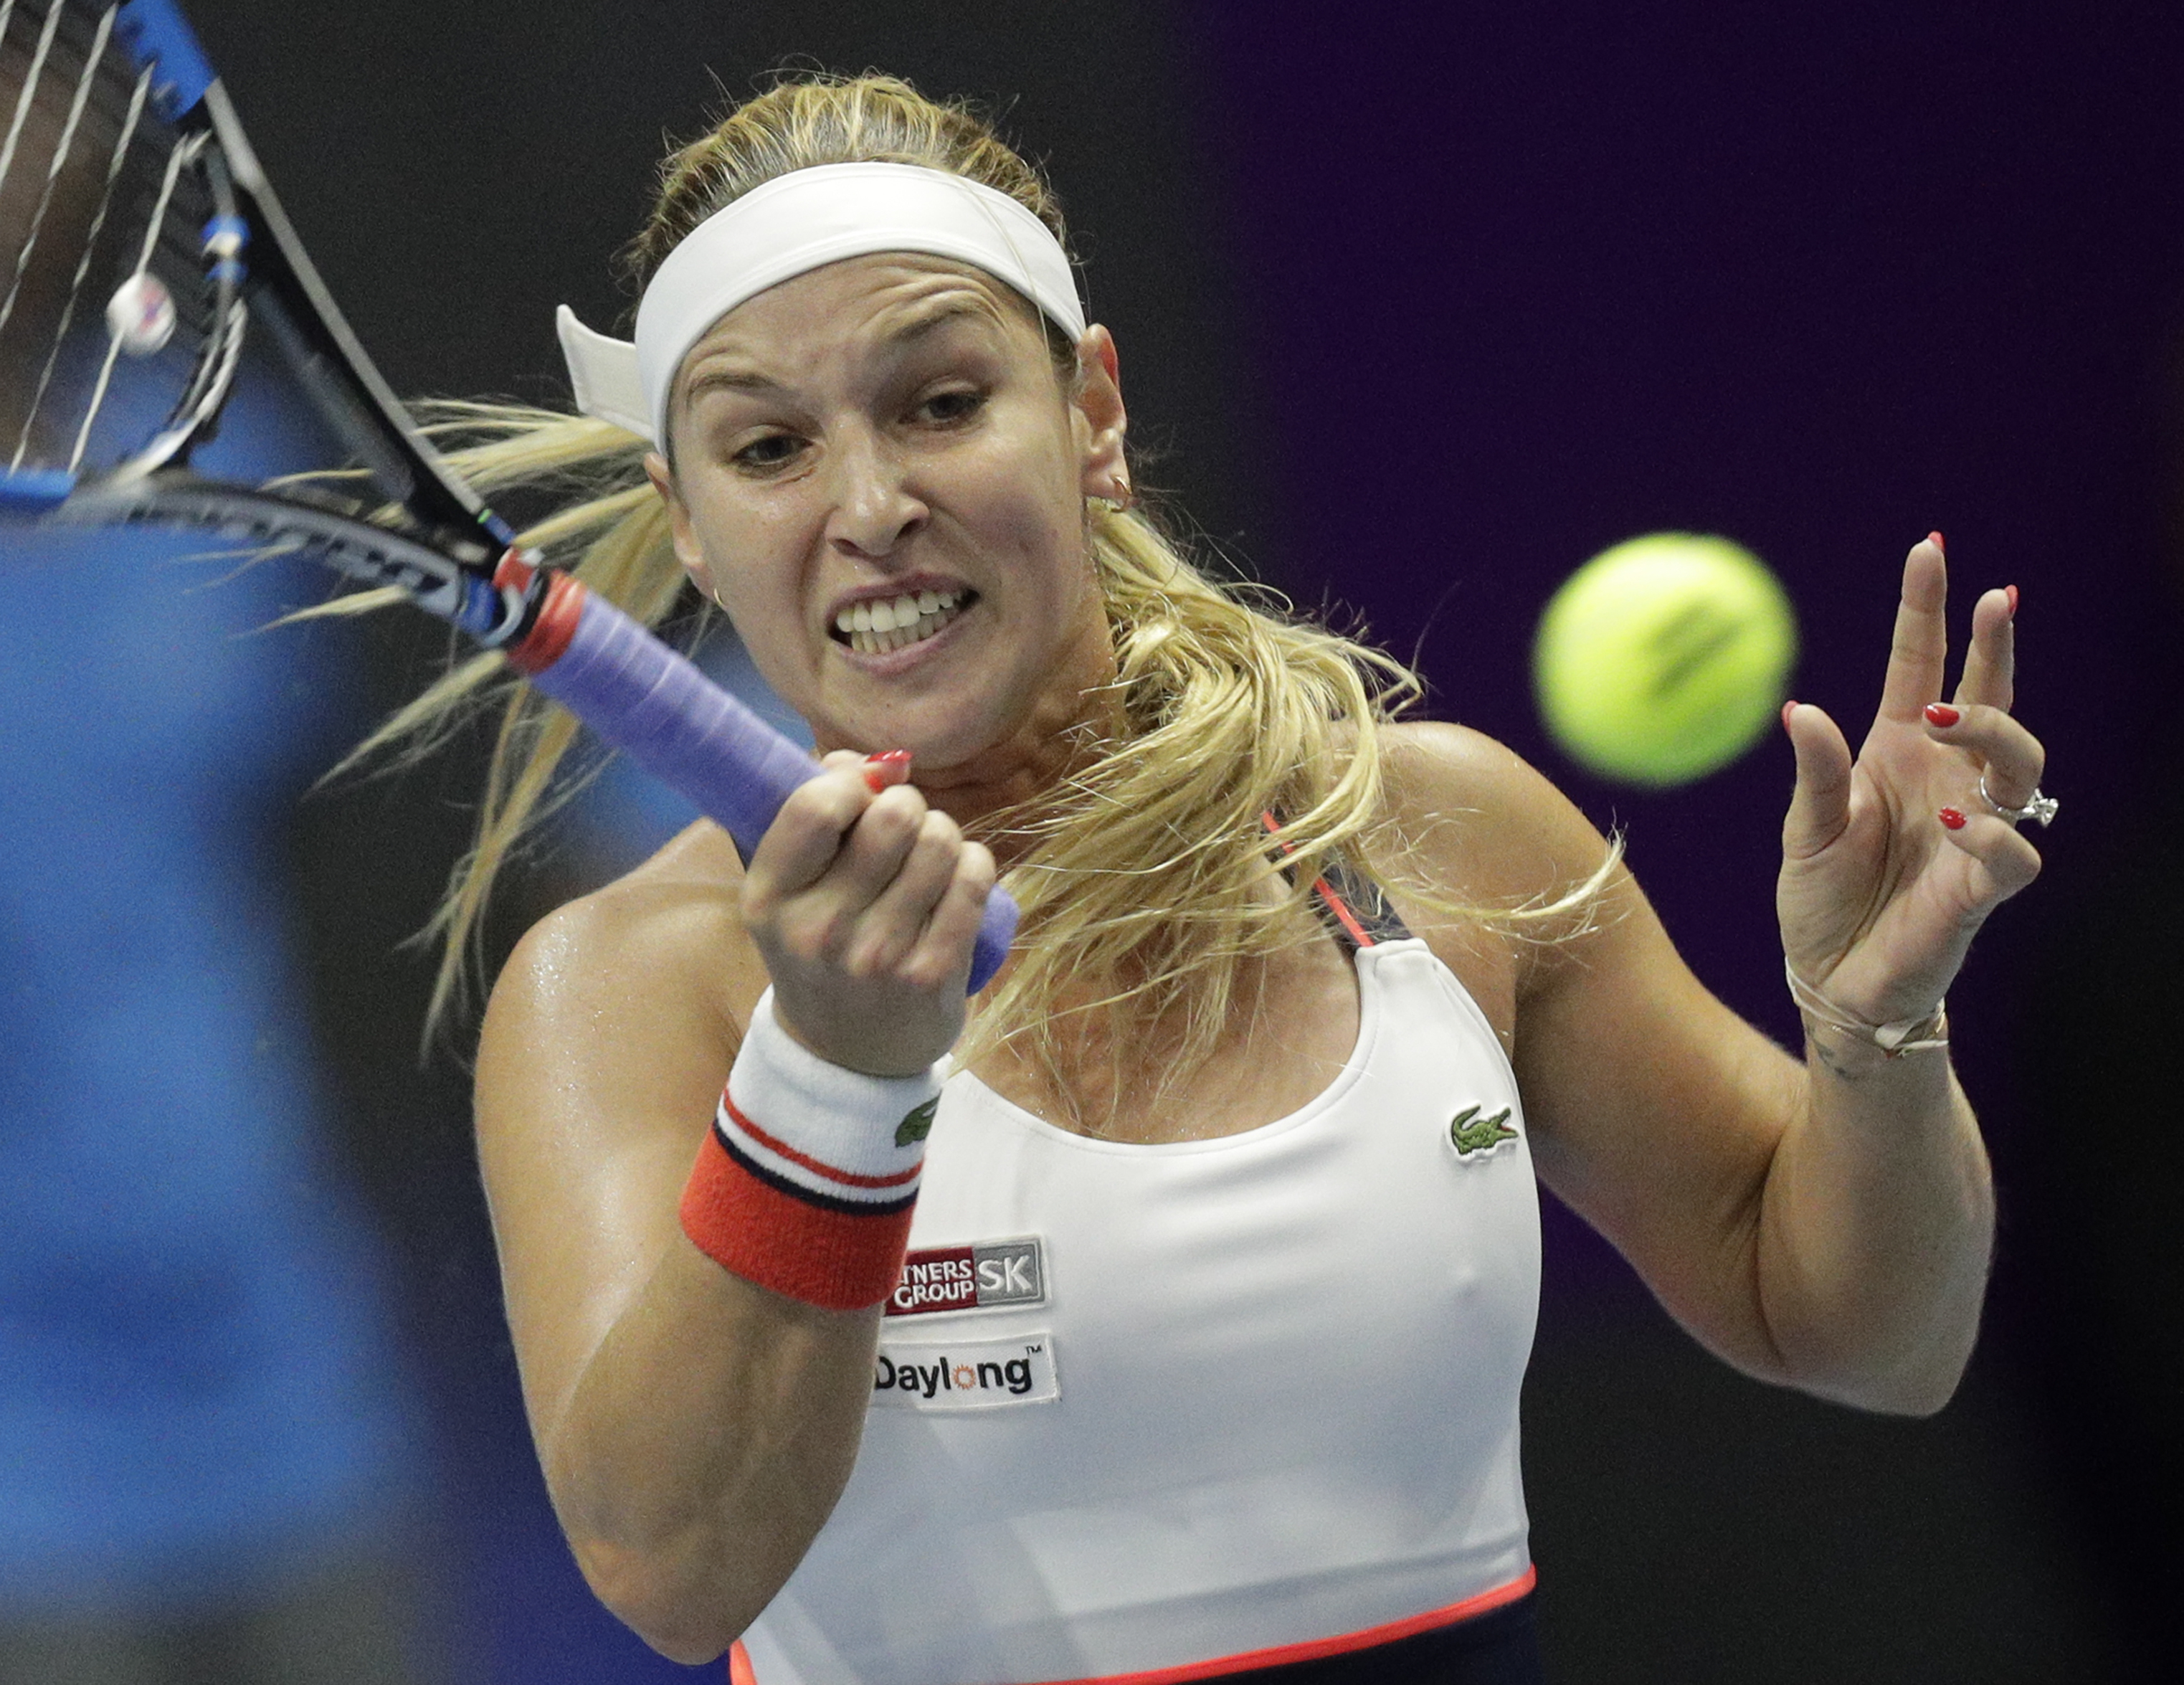 Dominika Cibulkova of Slovakia returns the ball to Elena Vesnina of Russia during the St. Petersburg Ladies Trophy-2017 tennis tournament quarterfinal match in St.Petersburg, Russia, Friday, Feb. 3, 2017. (AP Photo/Dmitri Lovetsky)